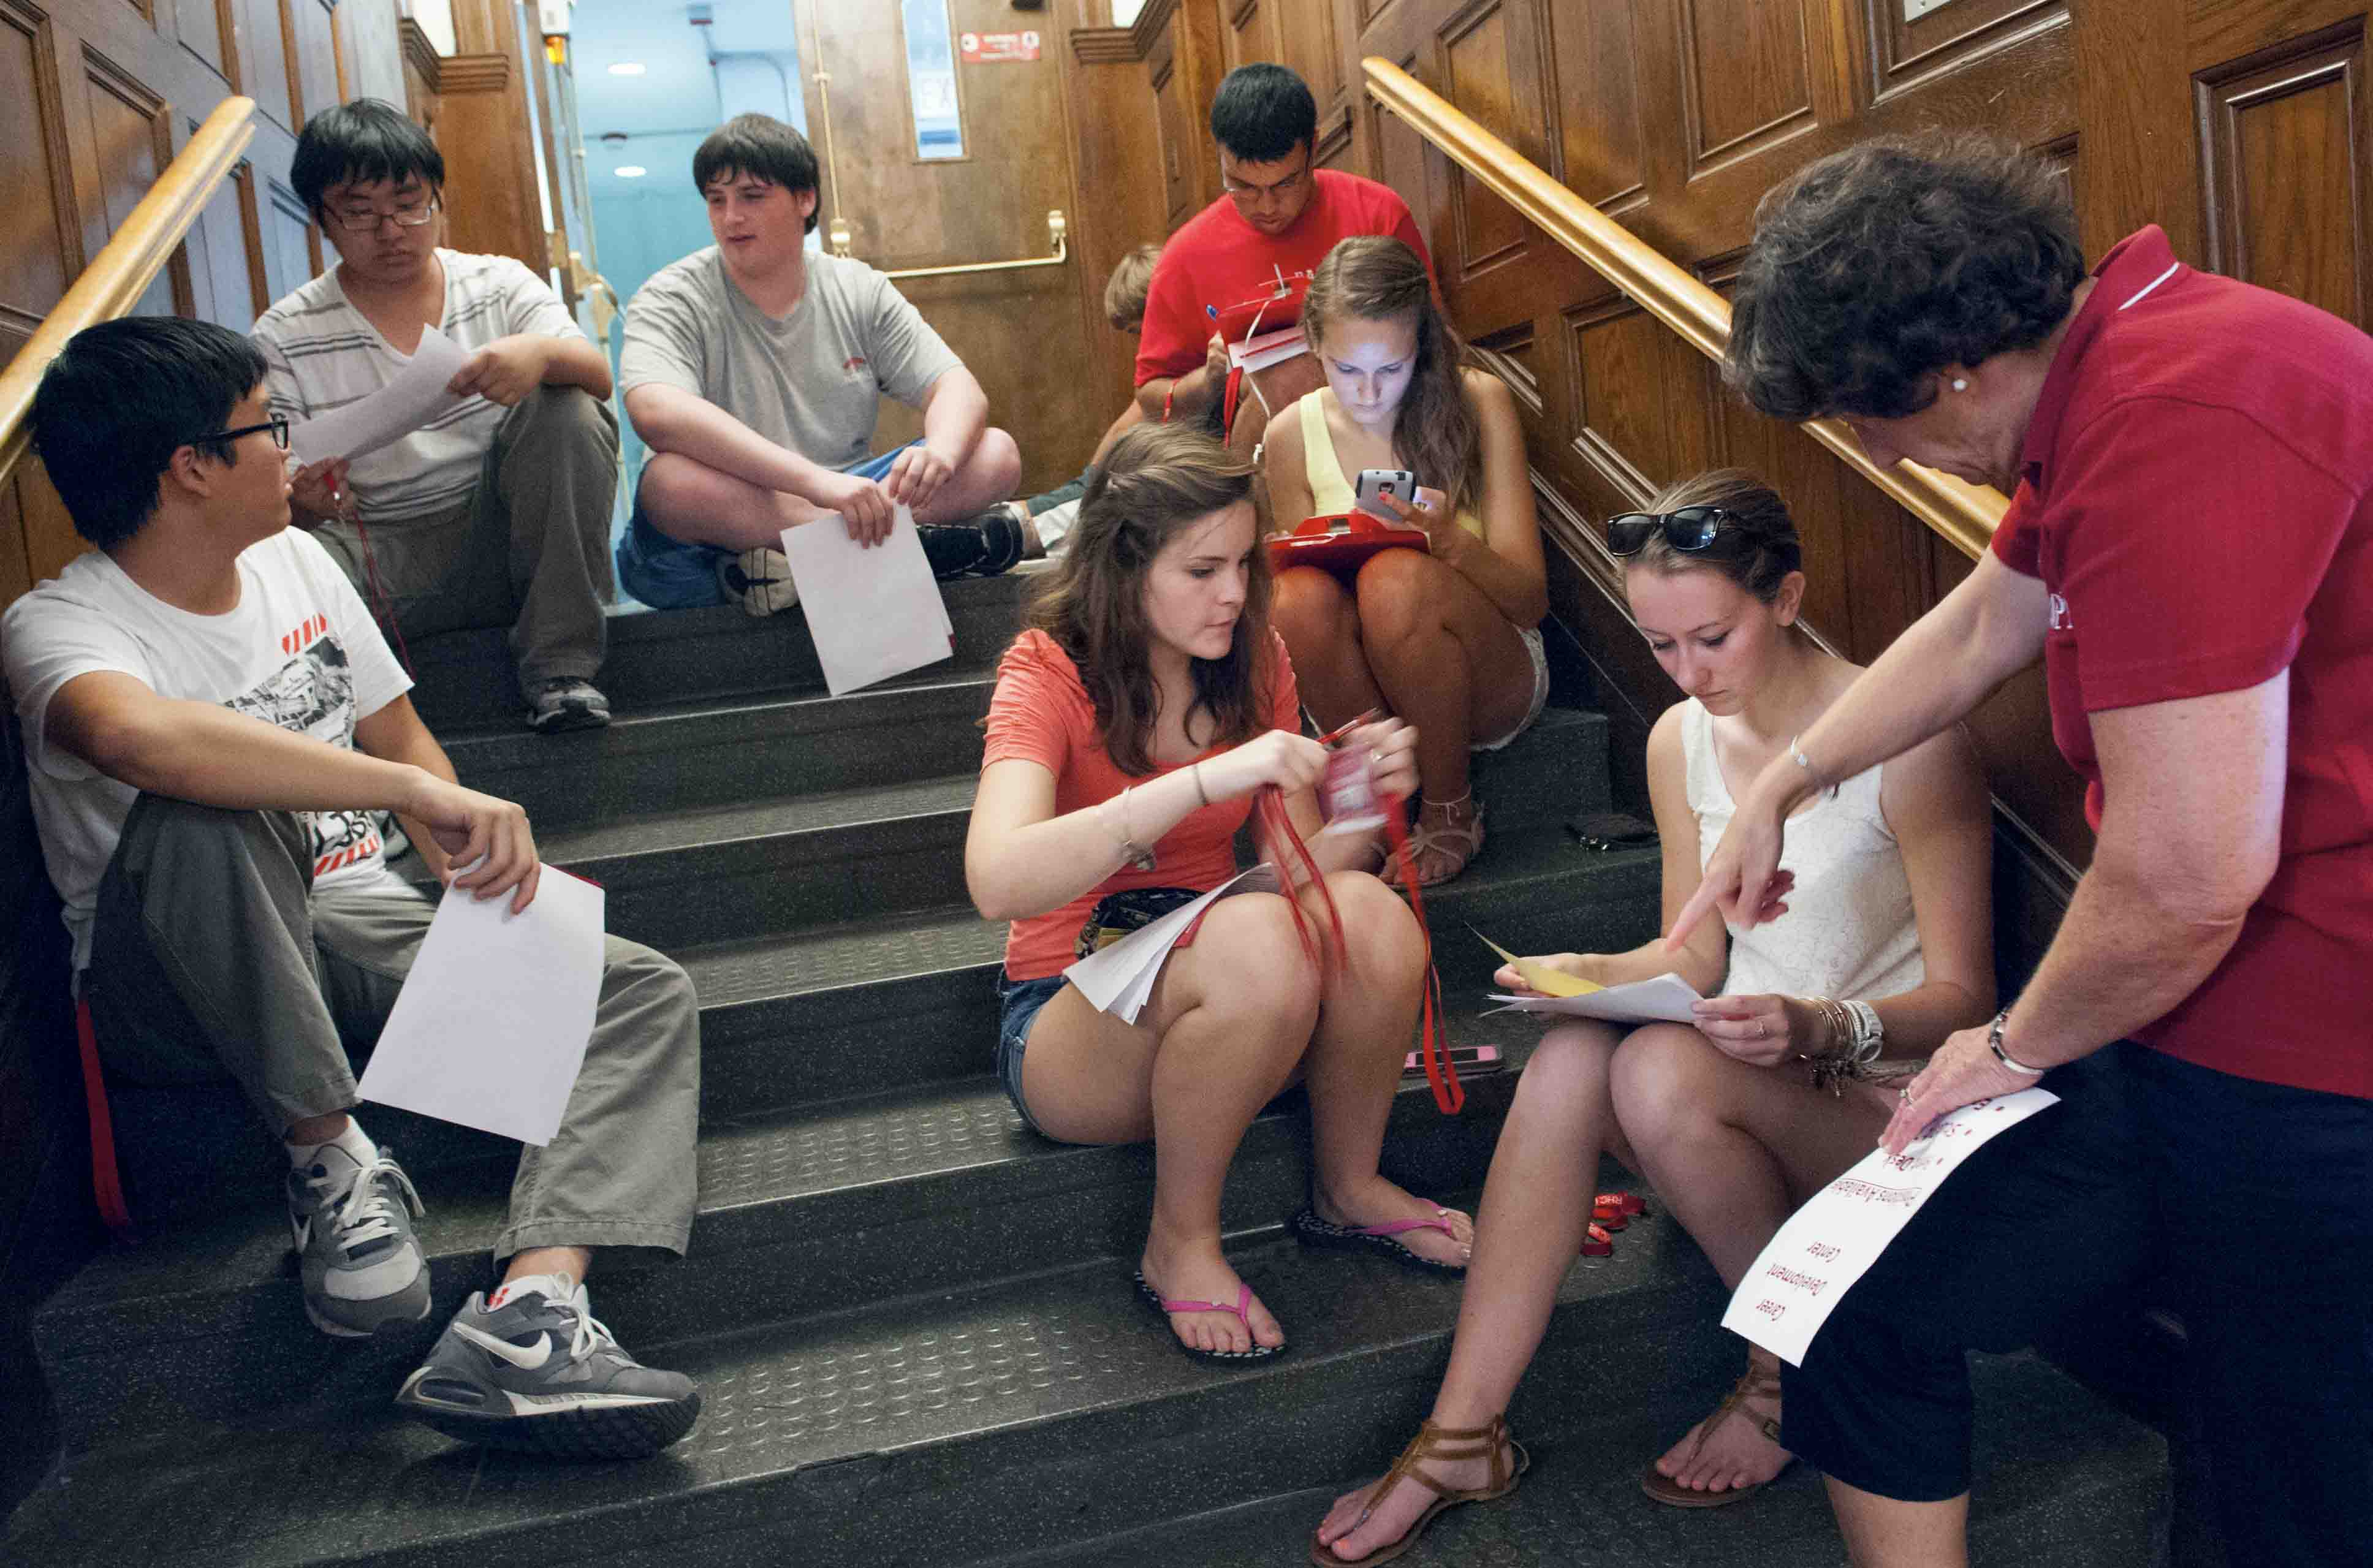 WPI students sitting on a staircase in Riley Commons.